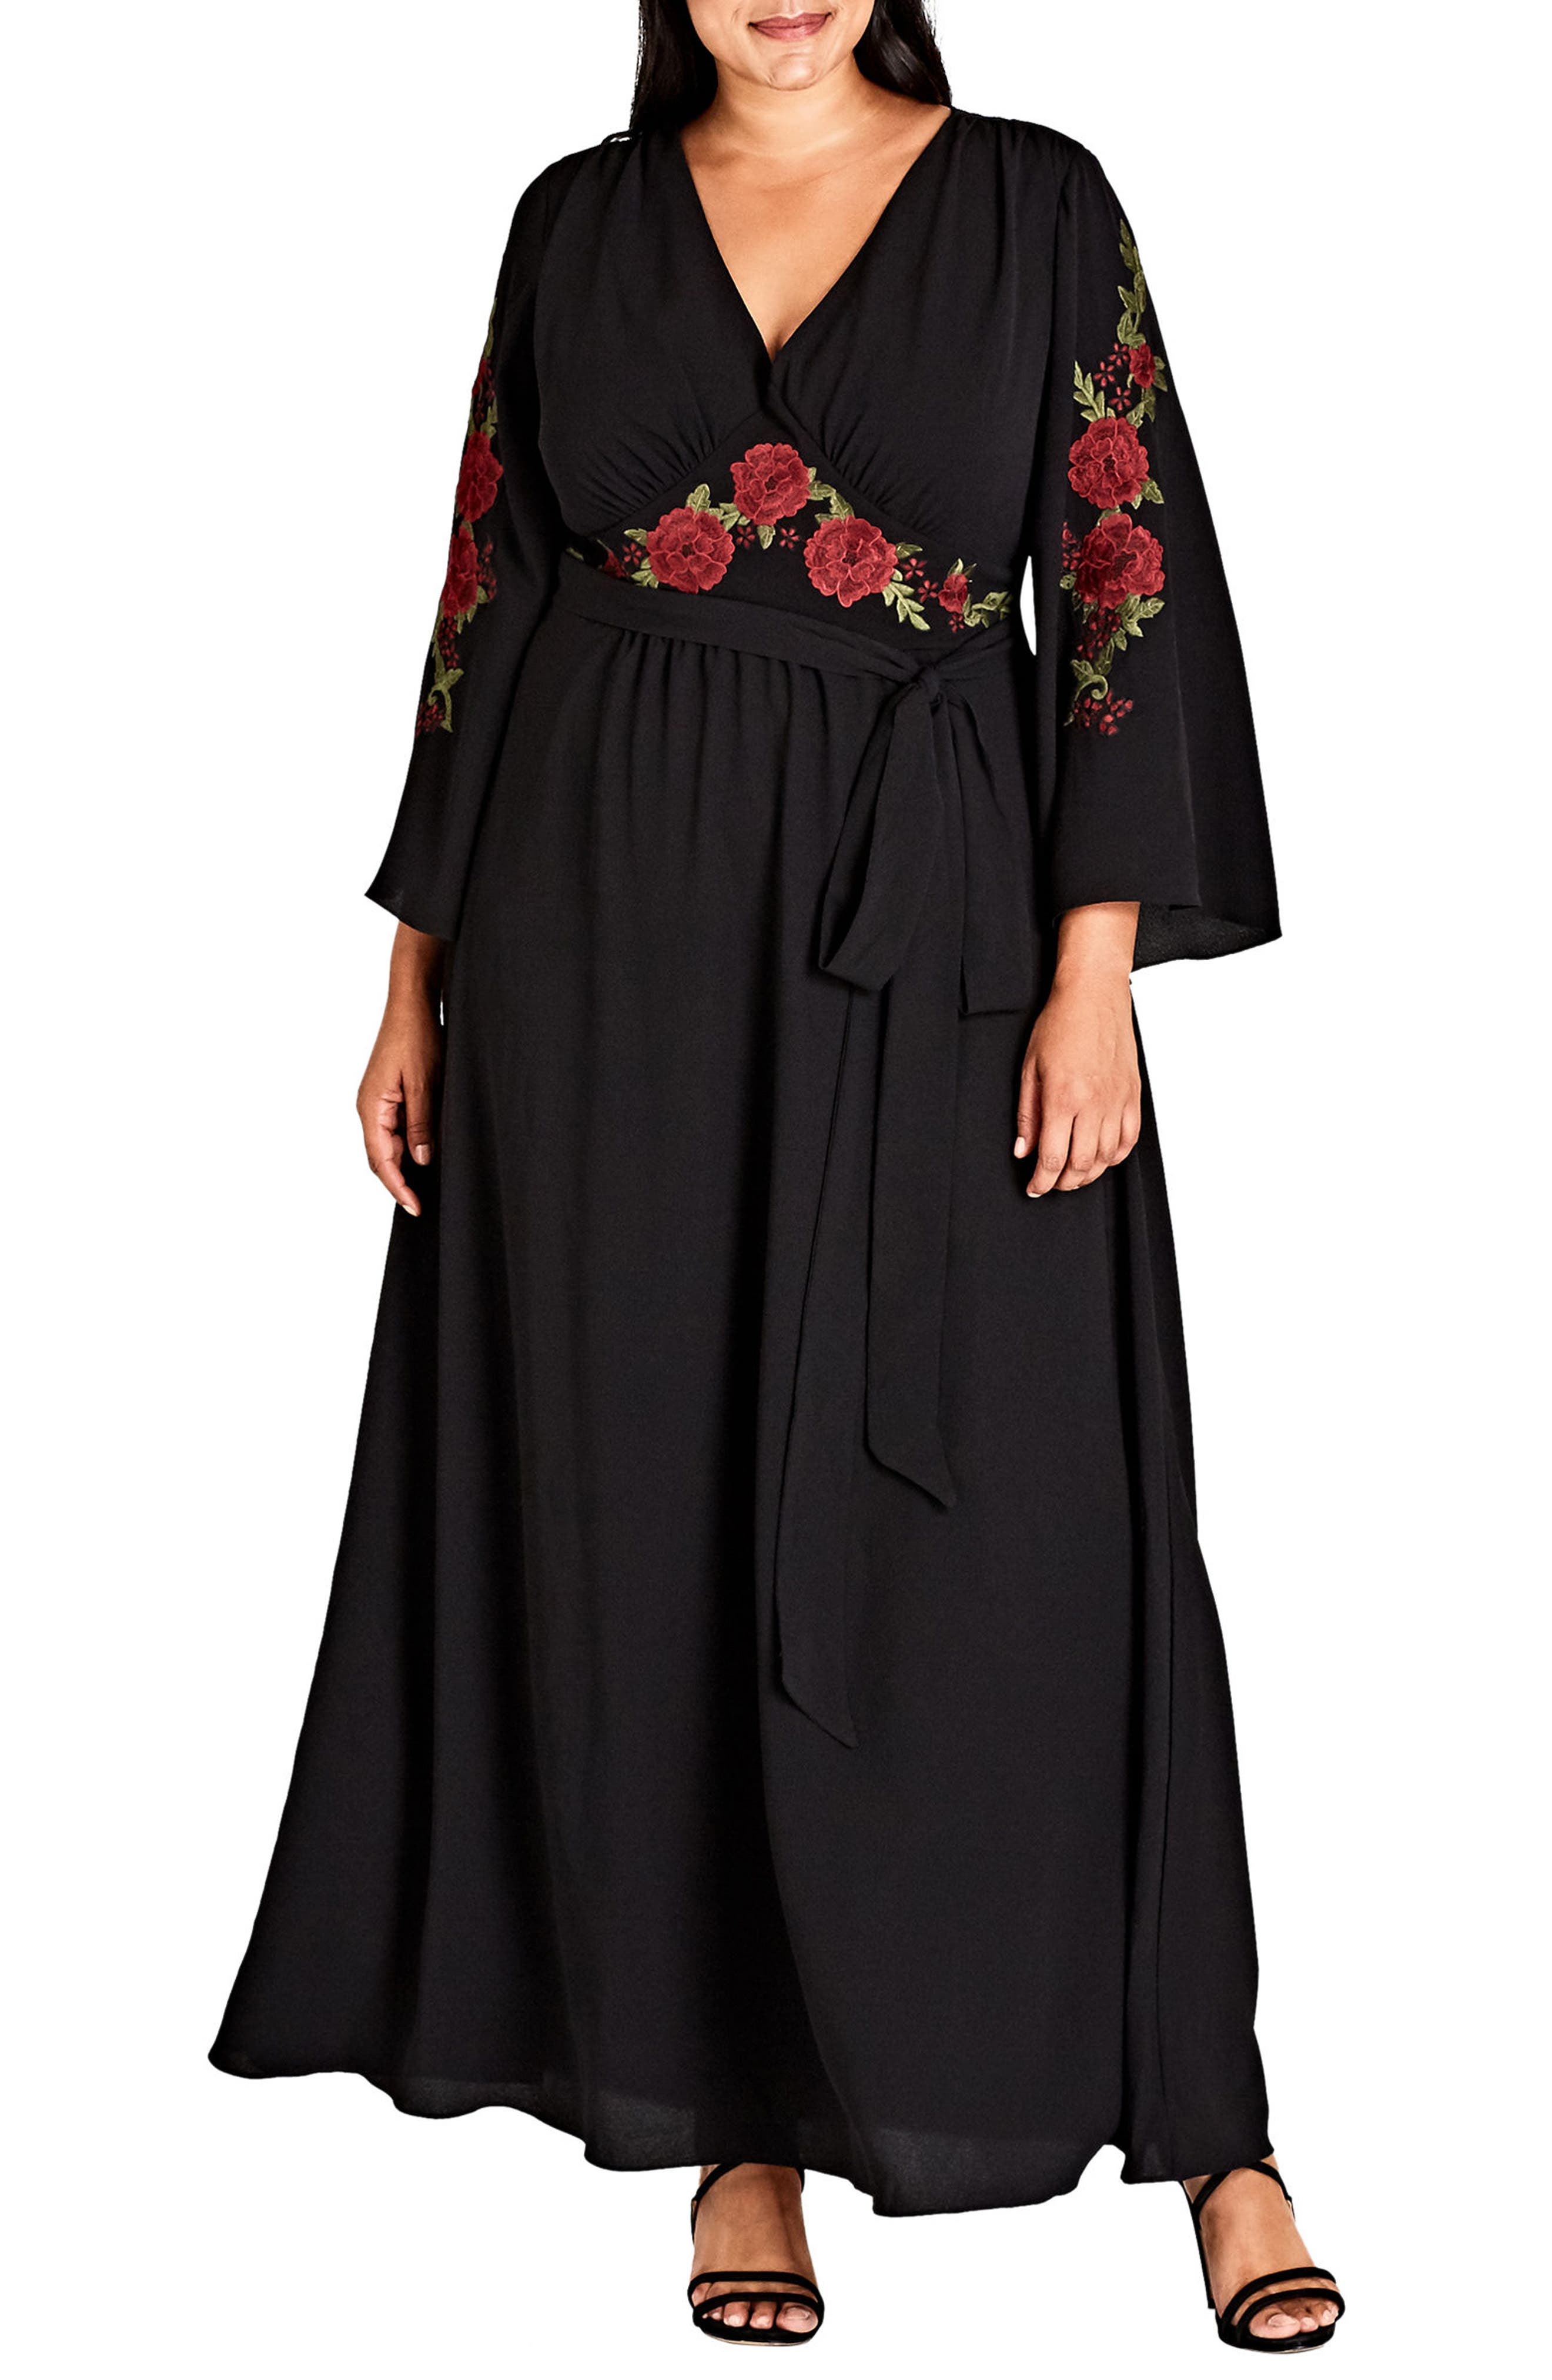 Alternate Image 1 Selected - City Chic Adorned Maxi Dress (Plus Size)